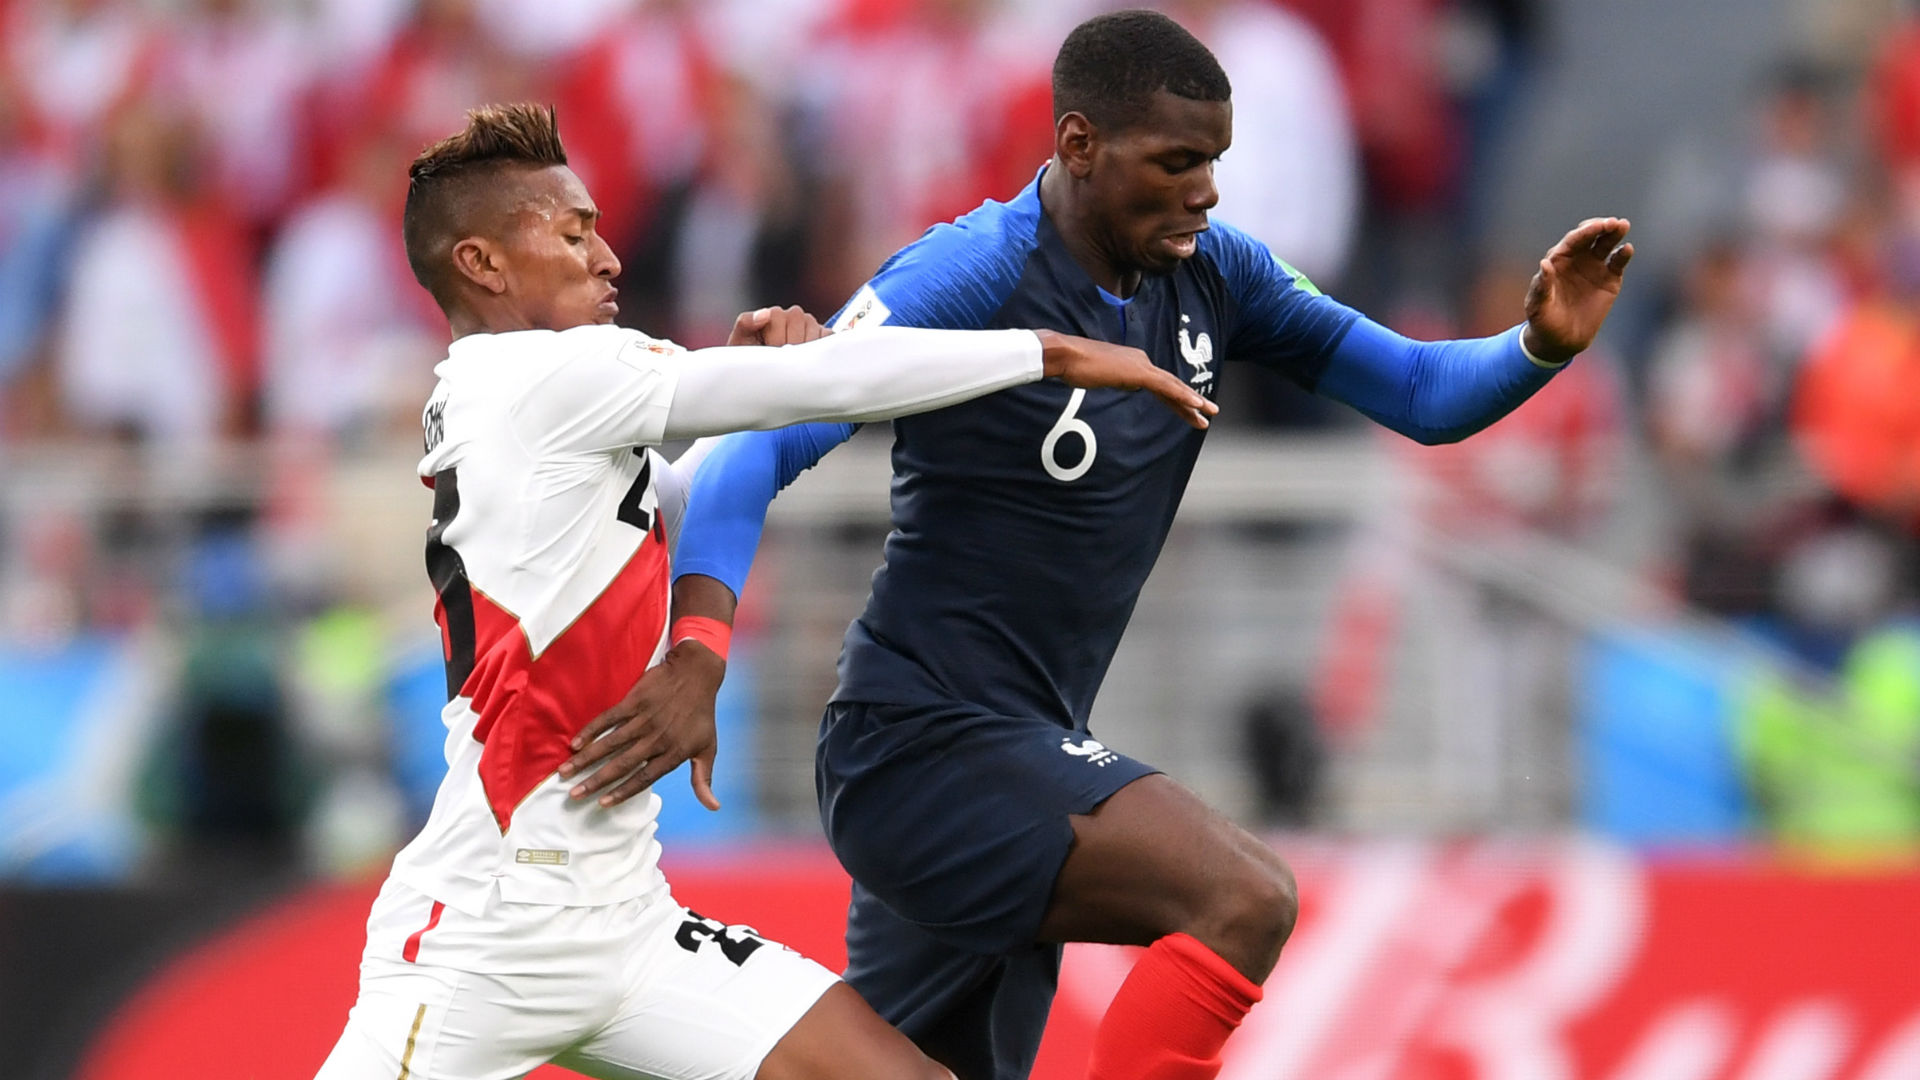 Paul Pogba Pedro Aquino France Peru World Cup 2018 21062018